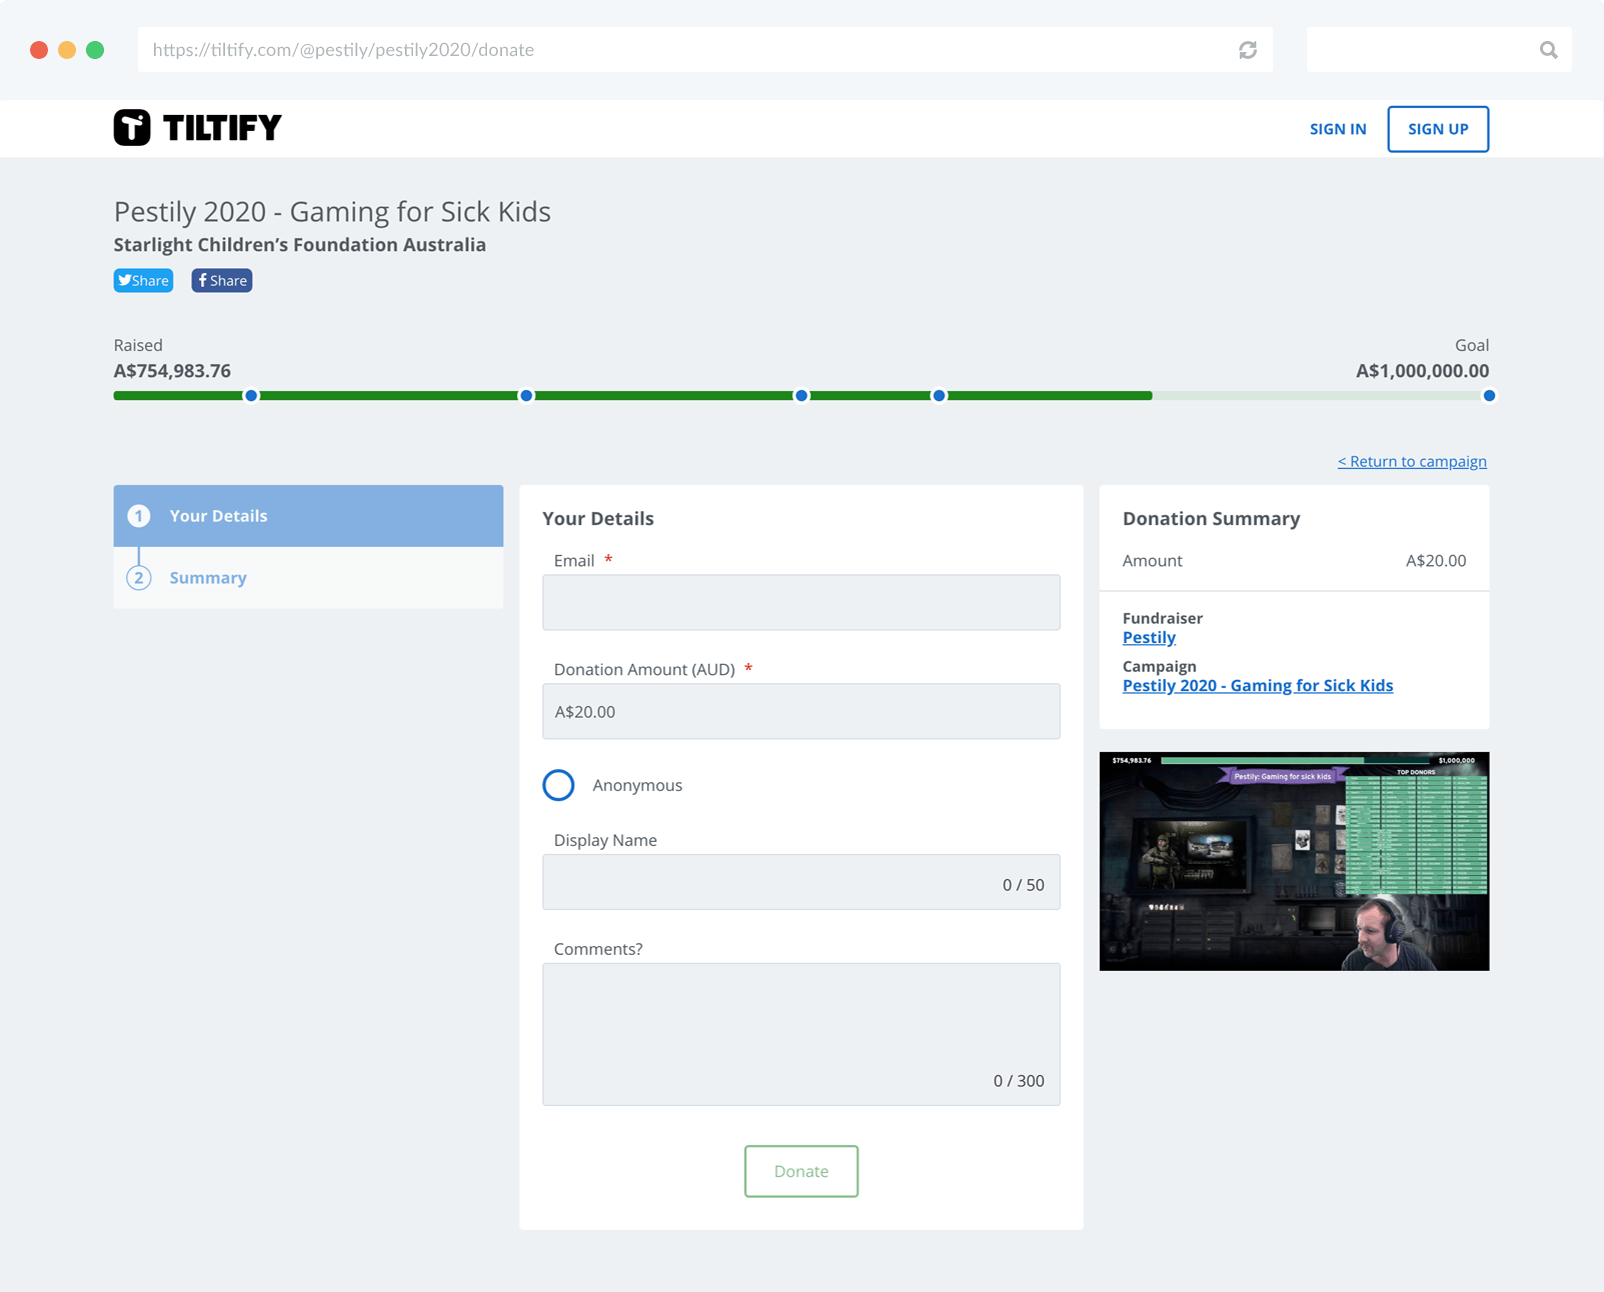 Pestily's 1M donation campaign on Tiltify